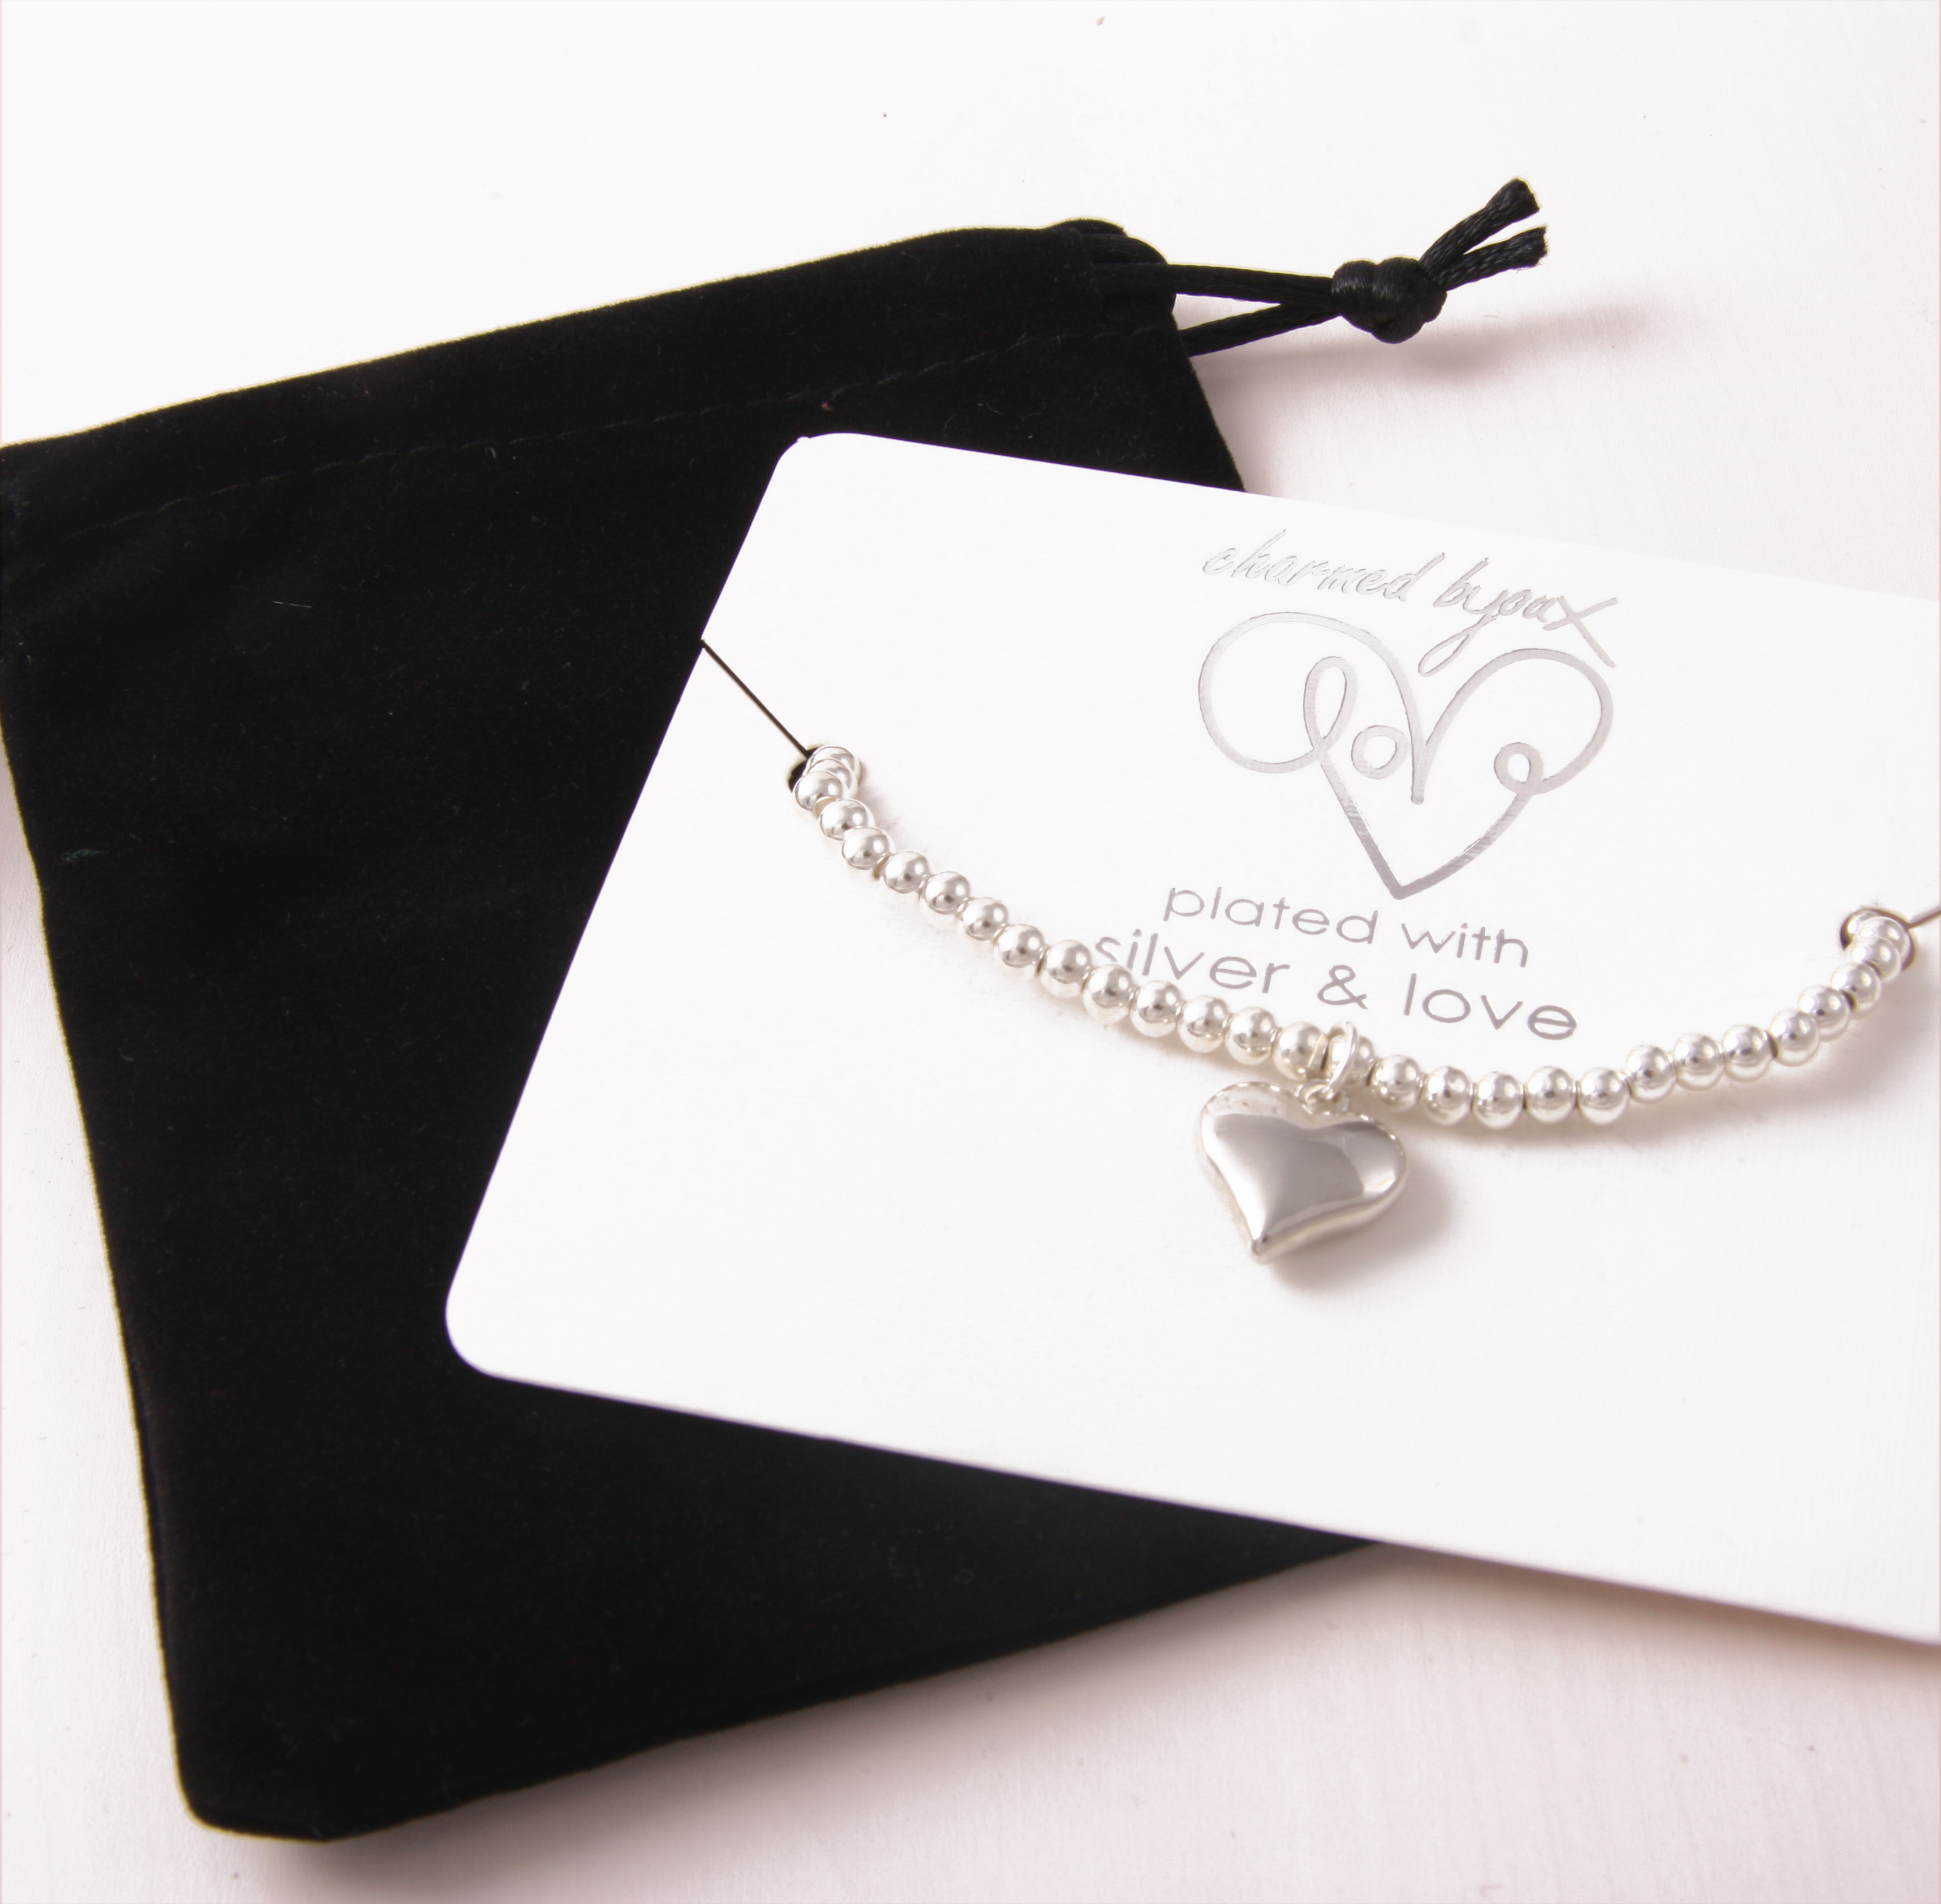 Bracelet silver plated - lock and key